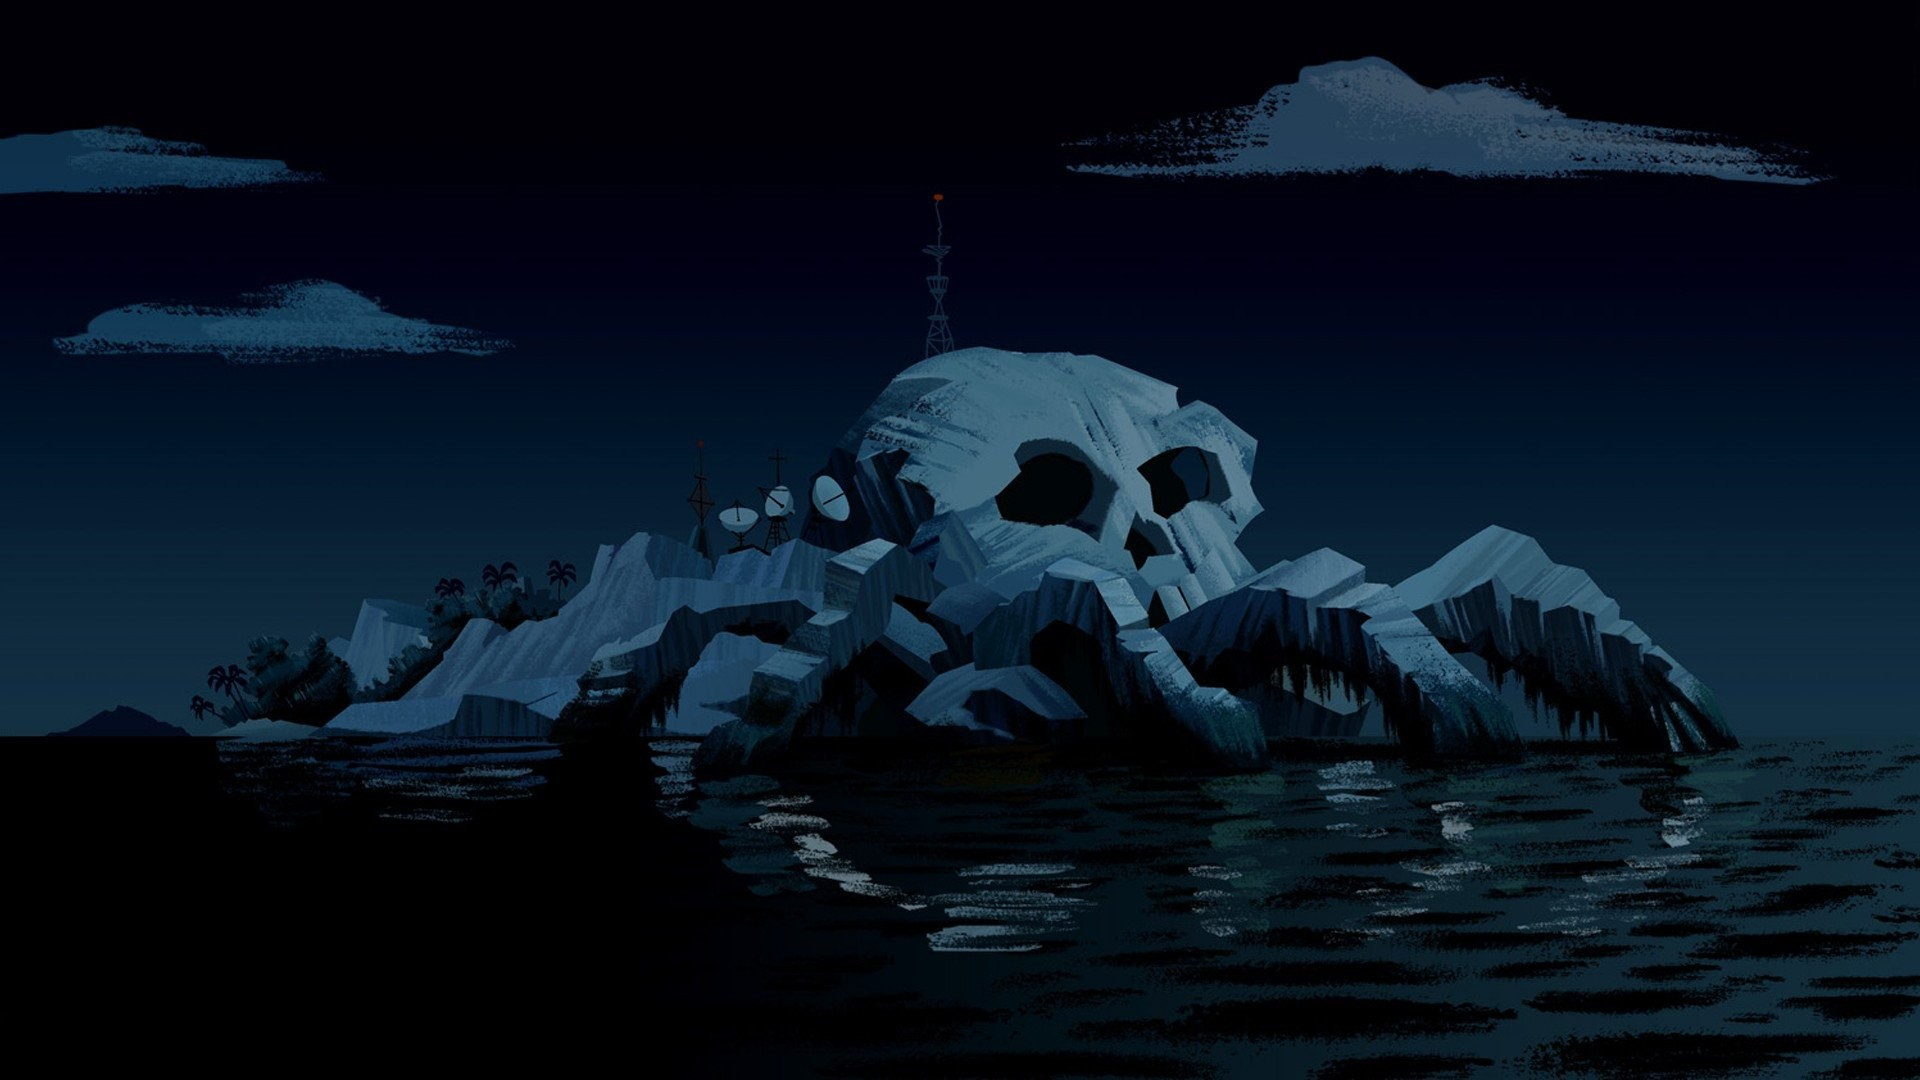 1920x1080 Venture Bros Wallpaper 24 - 1920 X 1080